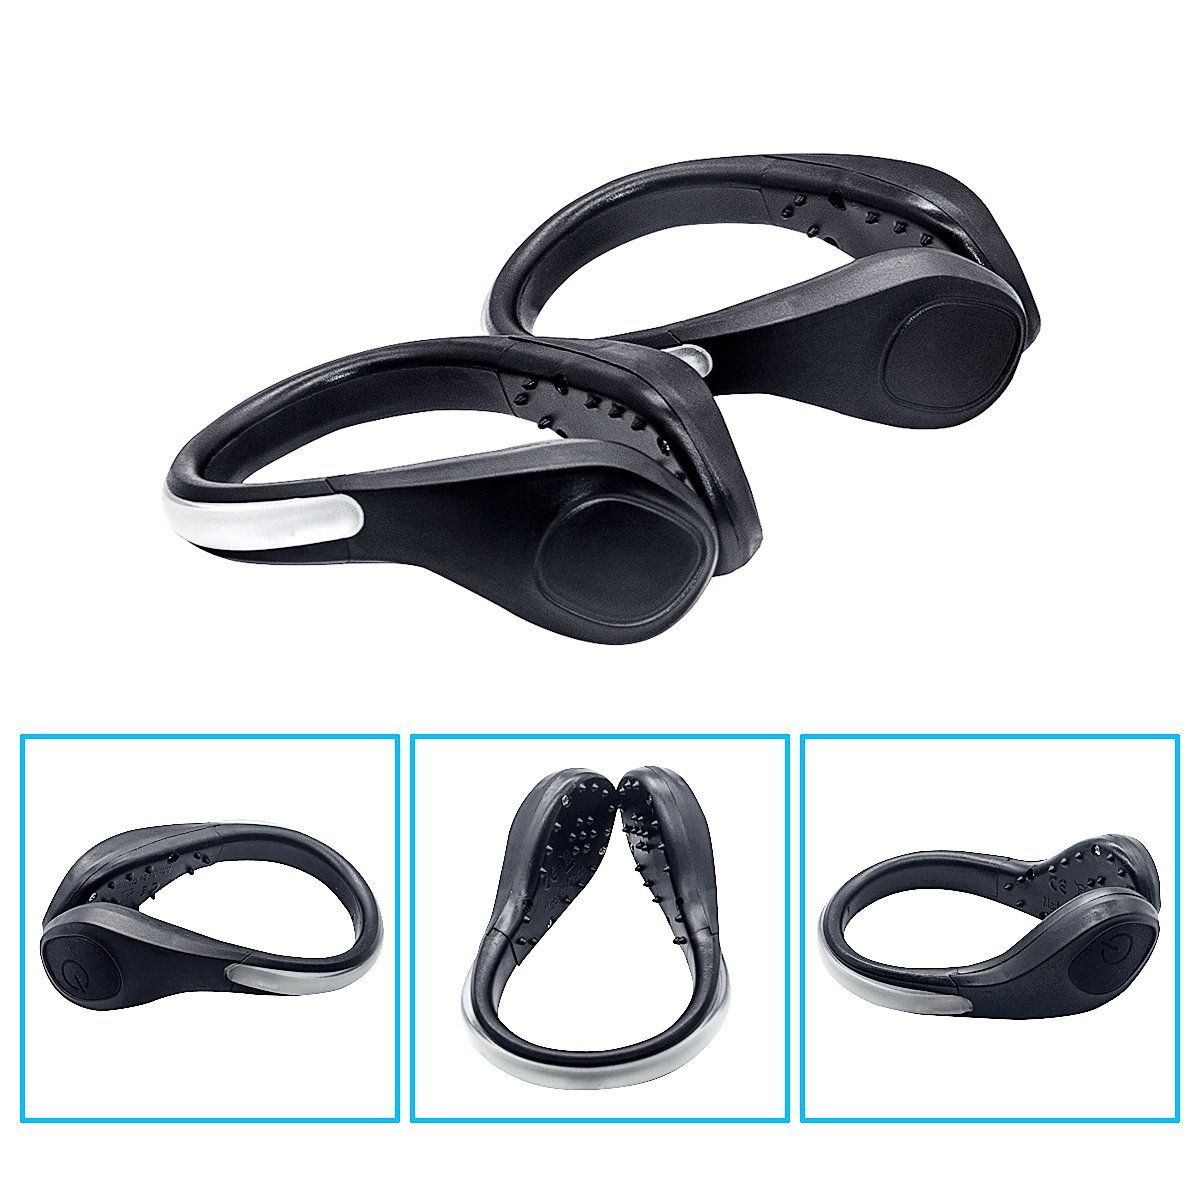 TEQIN Black Shell Colorful LED Flash Shoe Safety Clip